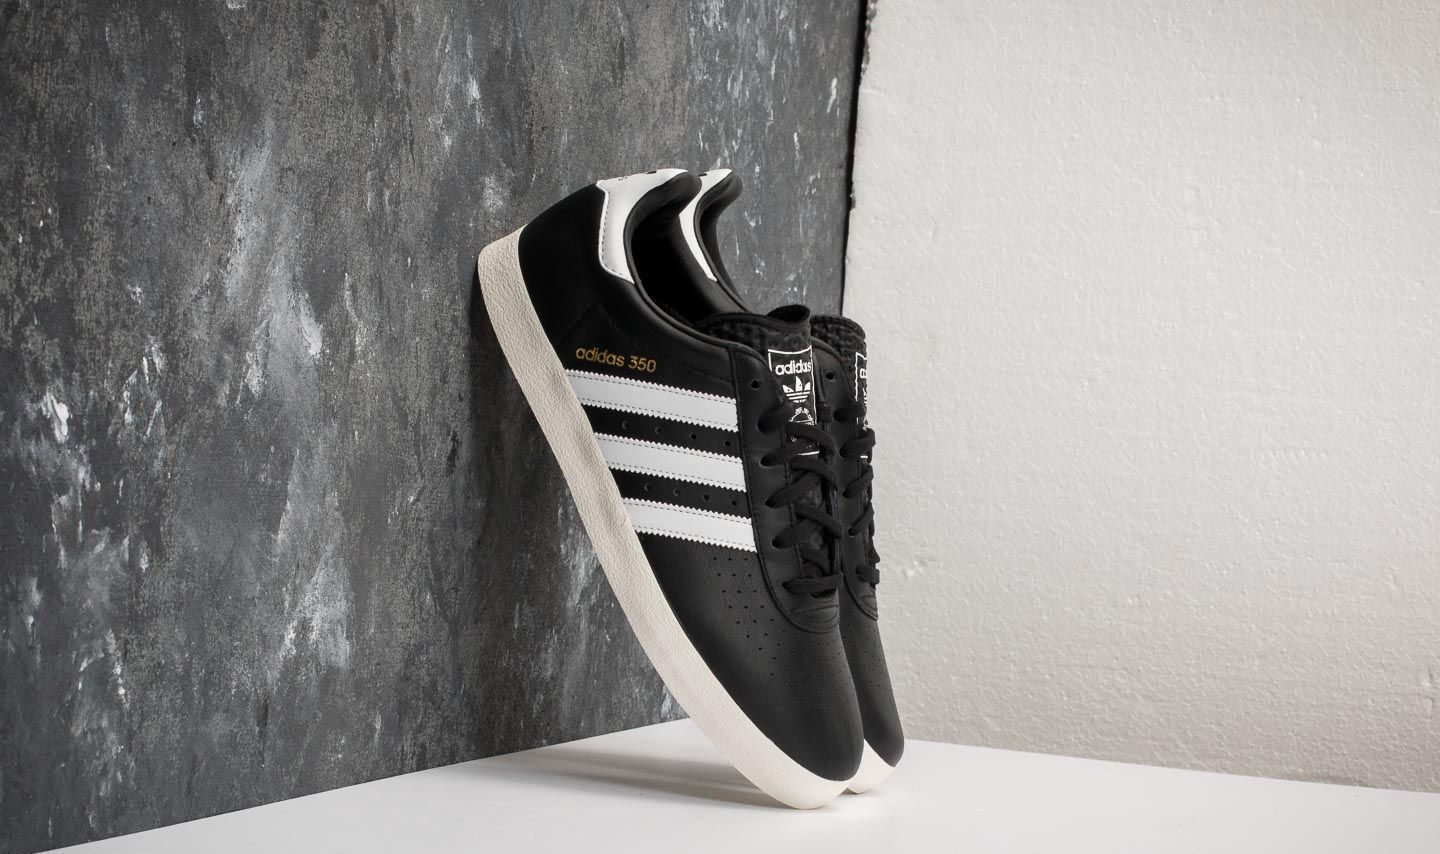 d802878b7cee49 adidas 350 Core Black  Ftw White  Off White